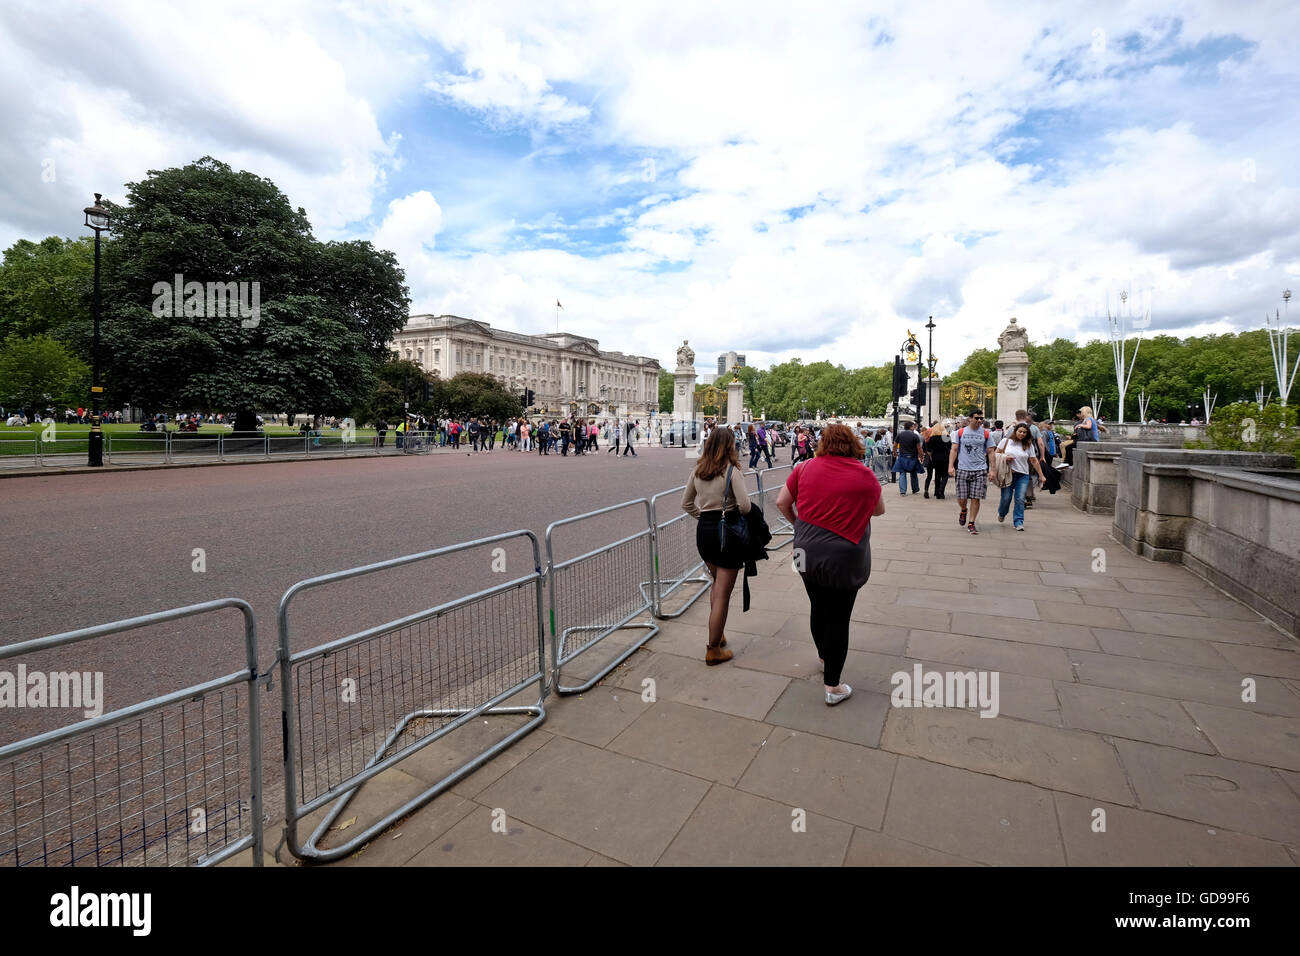 Looking Towards Buckingham Palace With Australia Gate To The Right